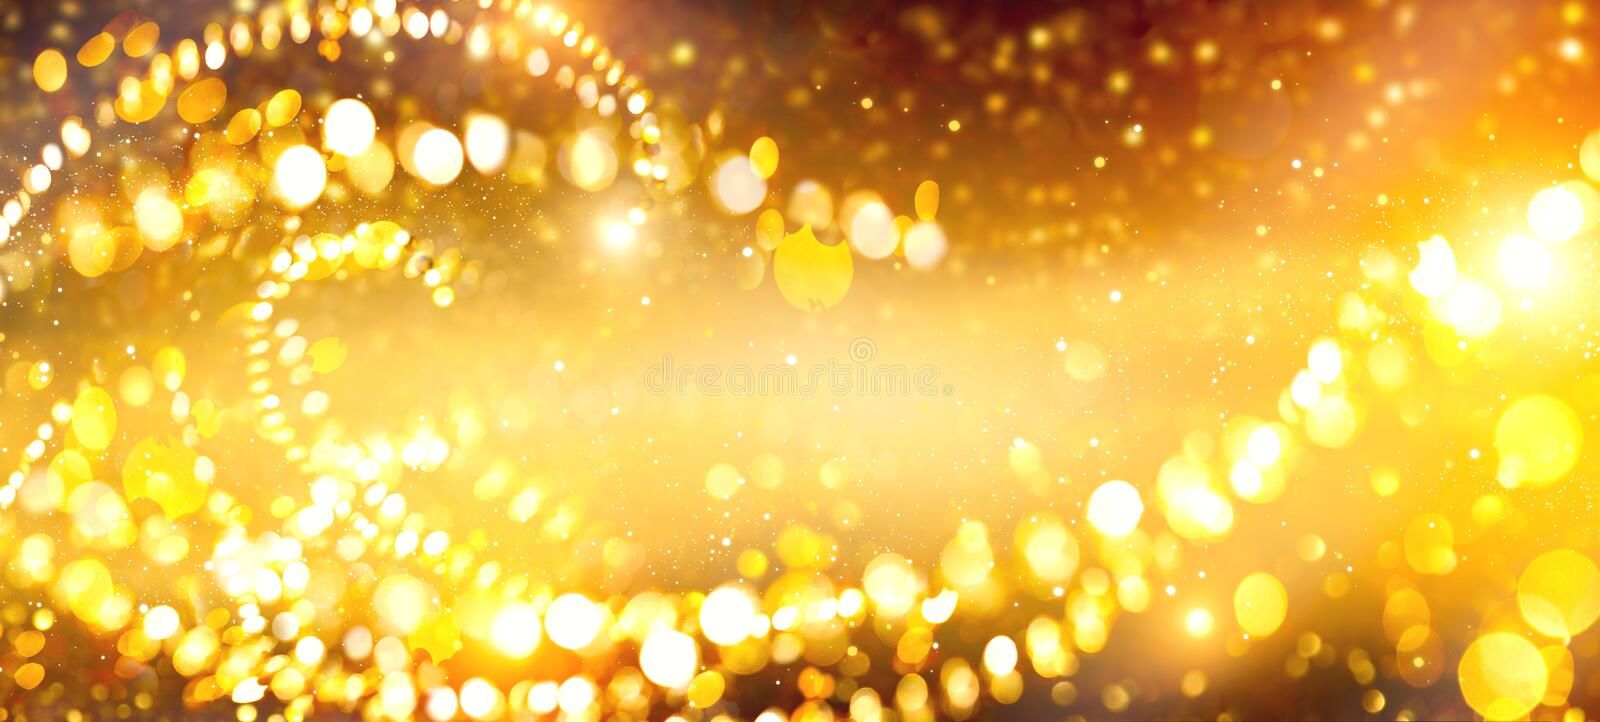 Golden Christmas and New Year glittering stars swirl on black bokeh background, backdrop with sparkling golden star. S, holiday garland, magic glowing dust royalty free stock photos